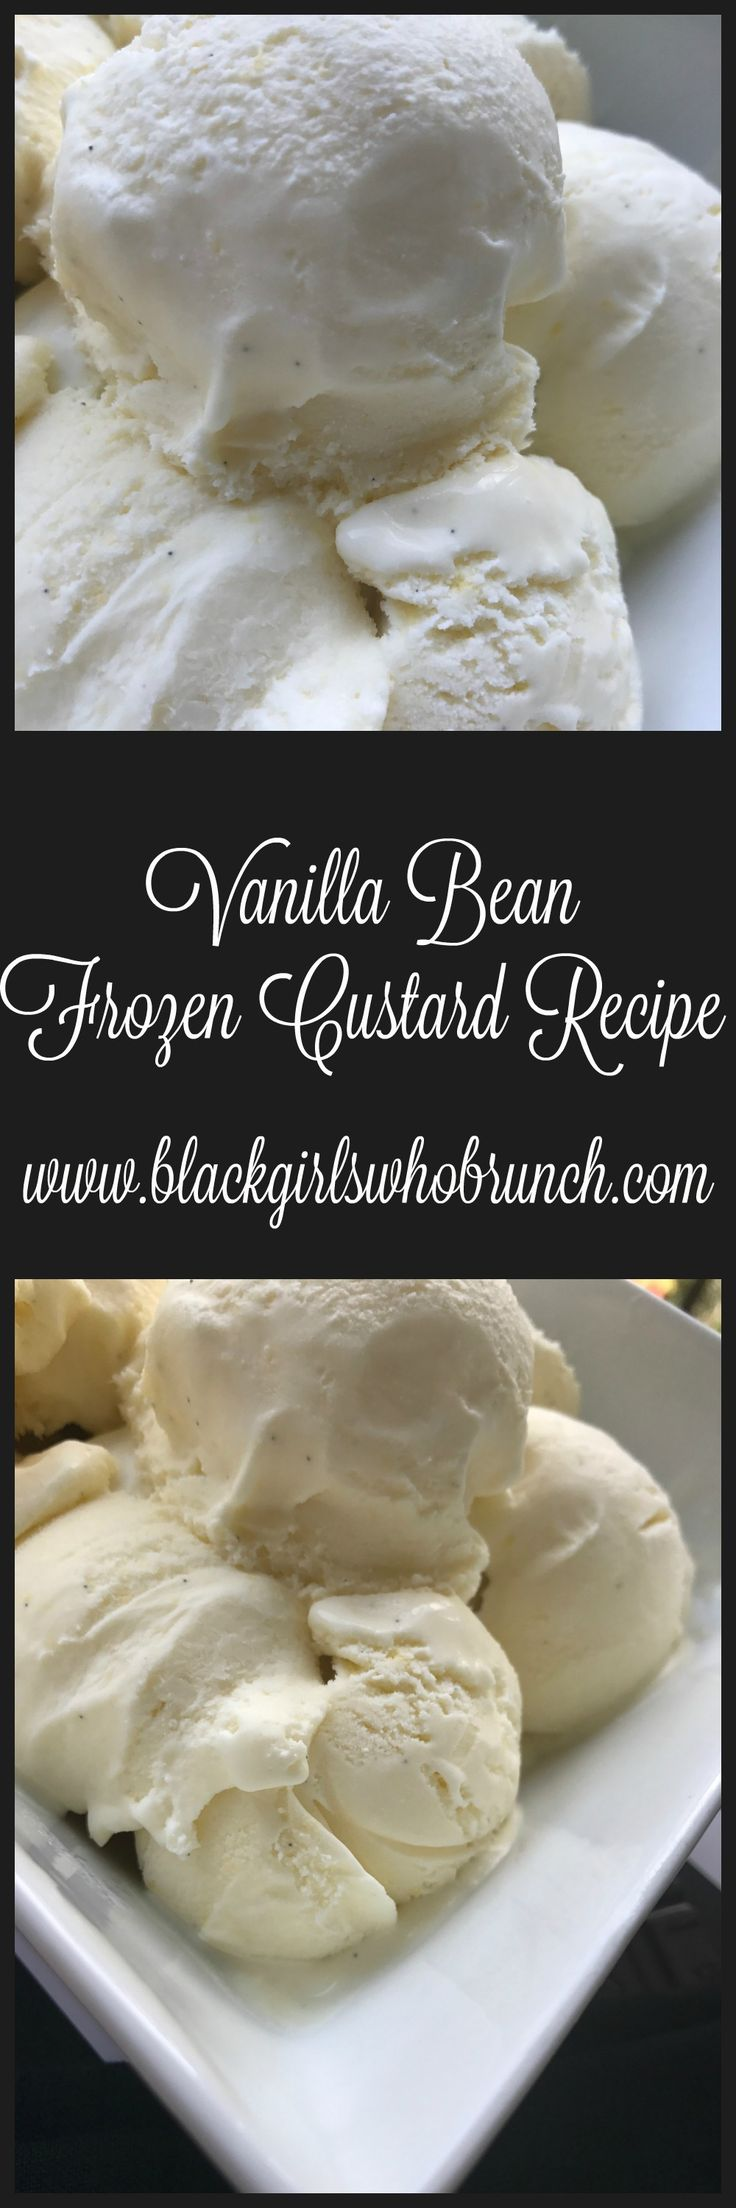 Vanilla Bean Frozen Custard Recipe Black Girls Who Brunch